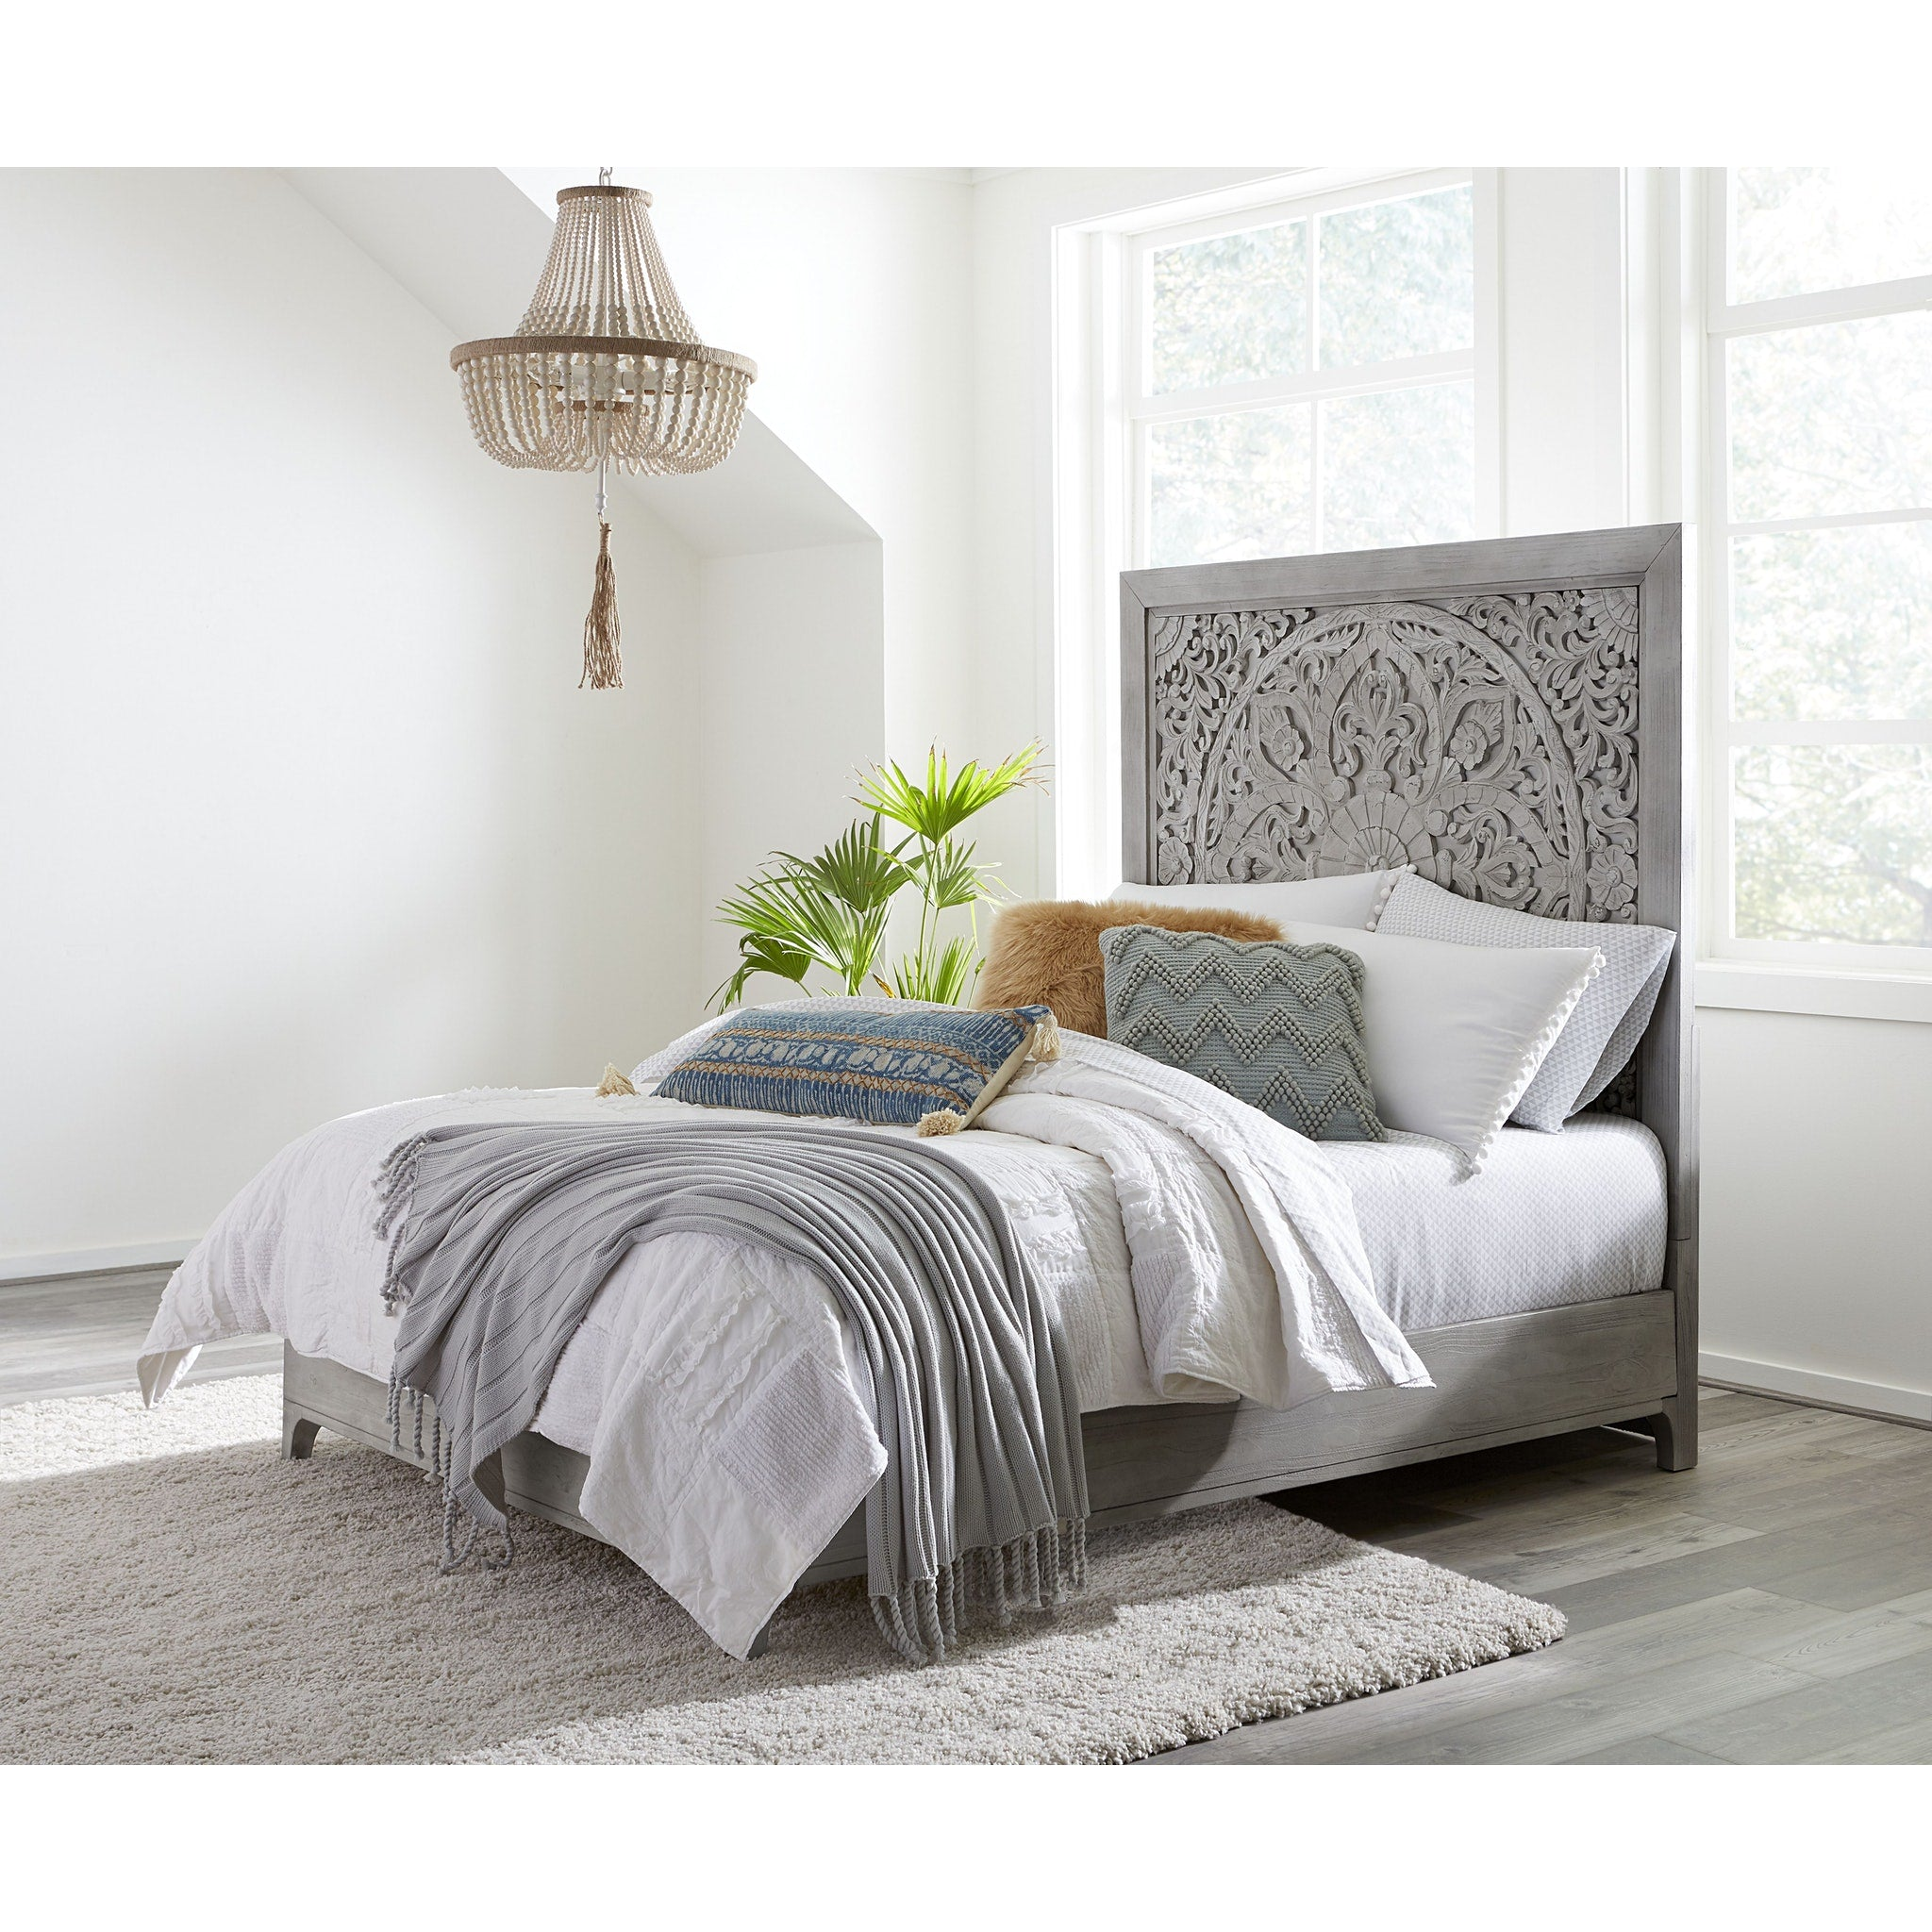 Boho Chic Queen Size Bed in Washed White